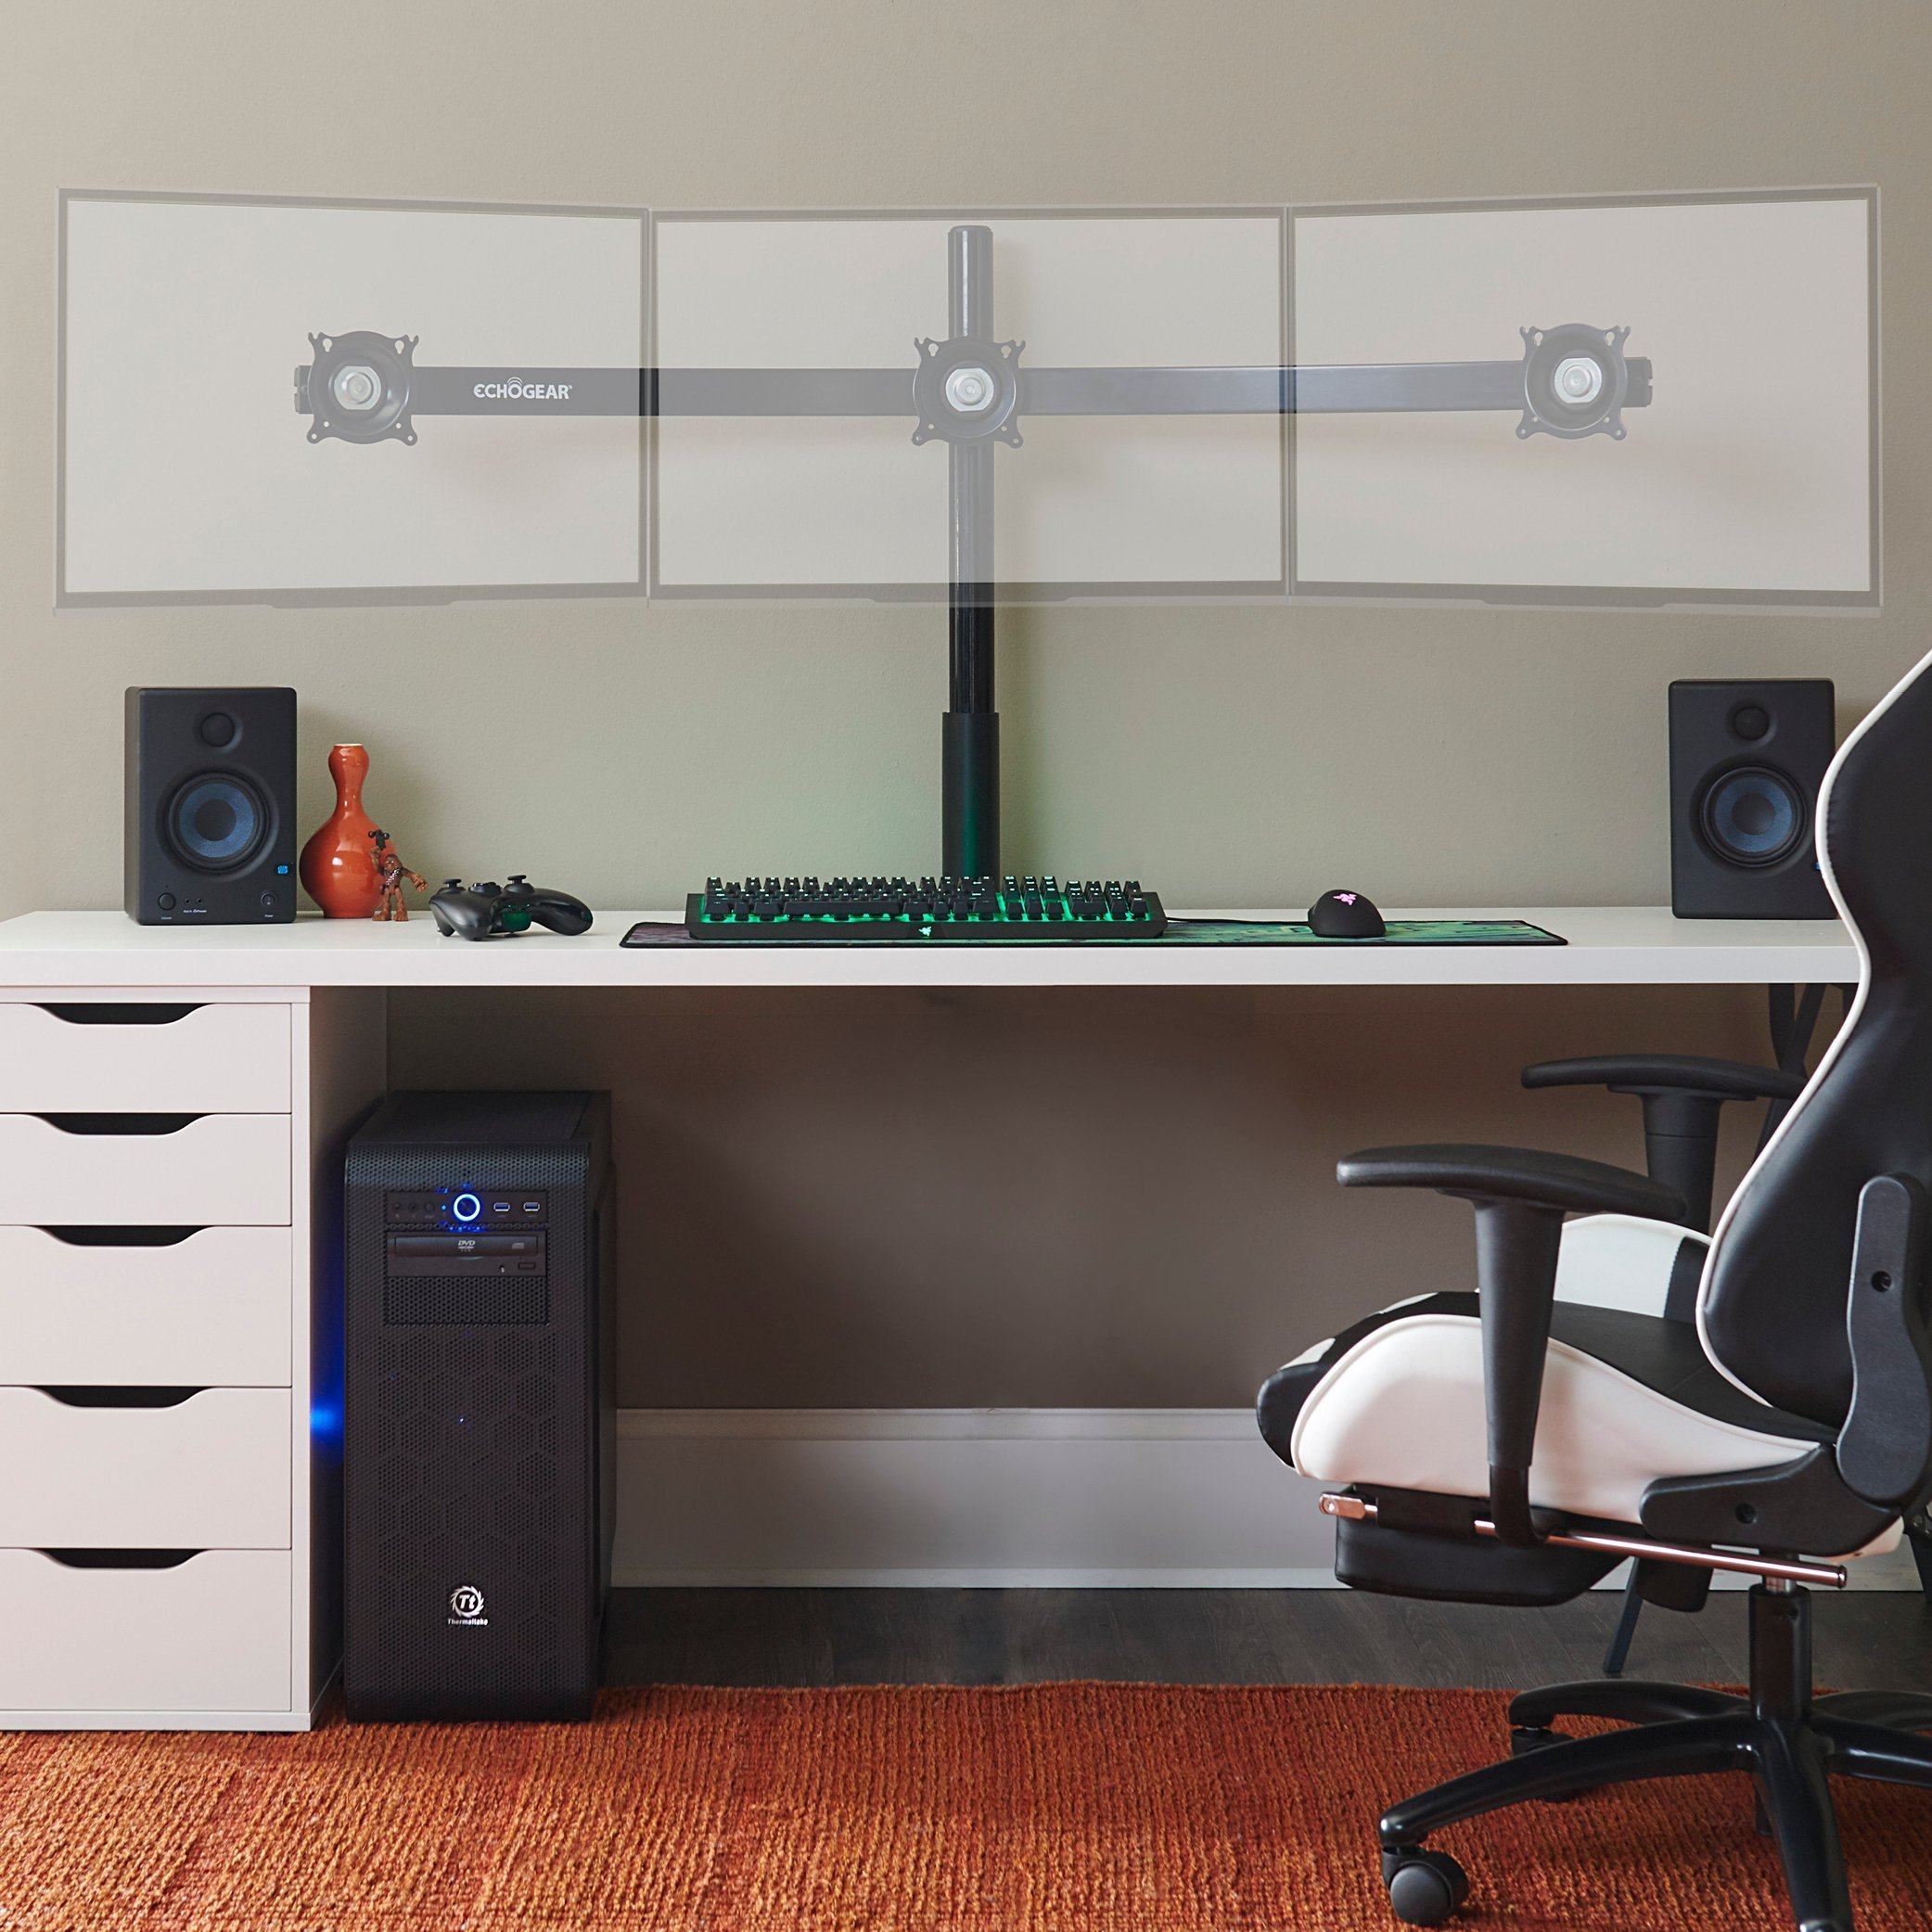 ECHOGEAR Triple Monitor Desk Mount Stand For Screens Up To 27 Inches - Height-Adjustable For Comfortable Gaming & Work - Works With 3 Vertical Or Horizontal Monitors - Perfect For Array-Style Gaming